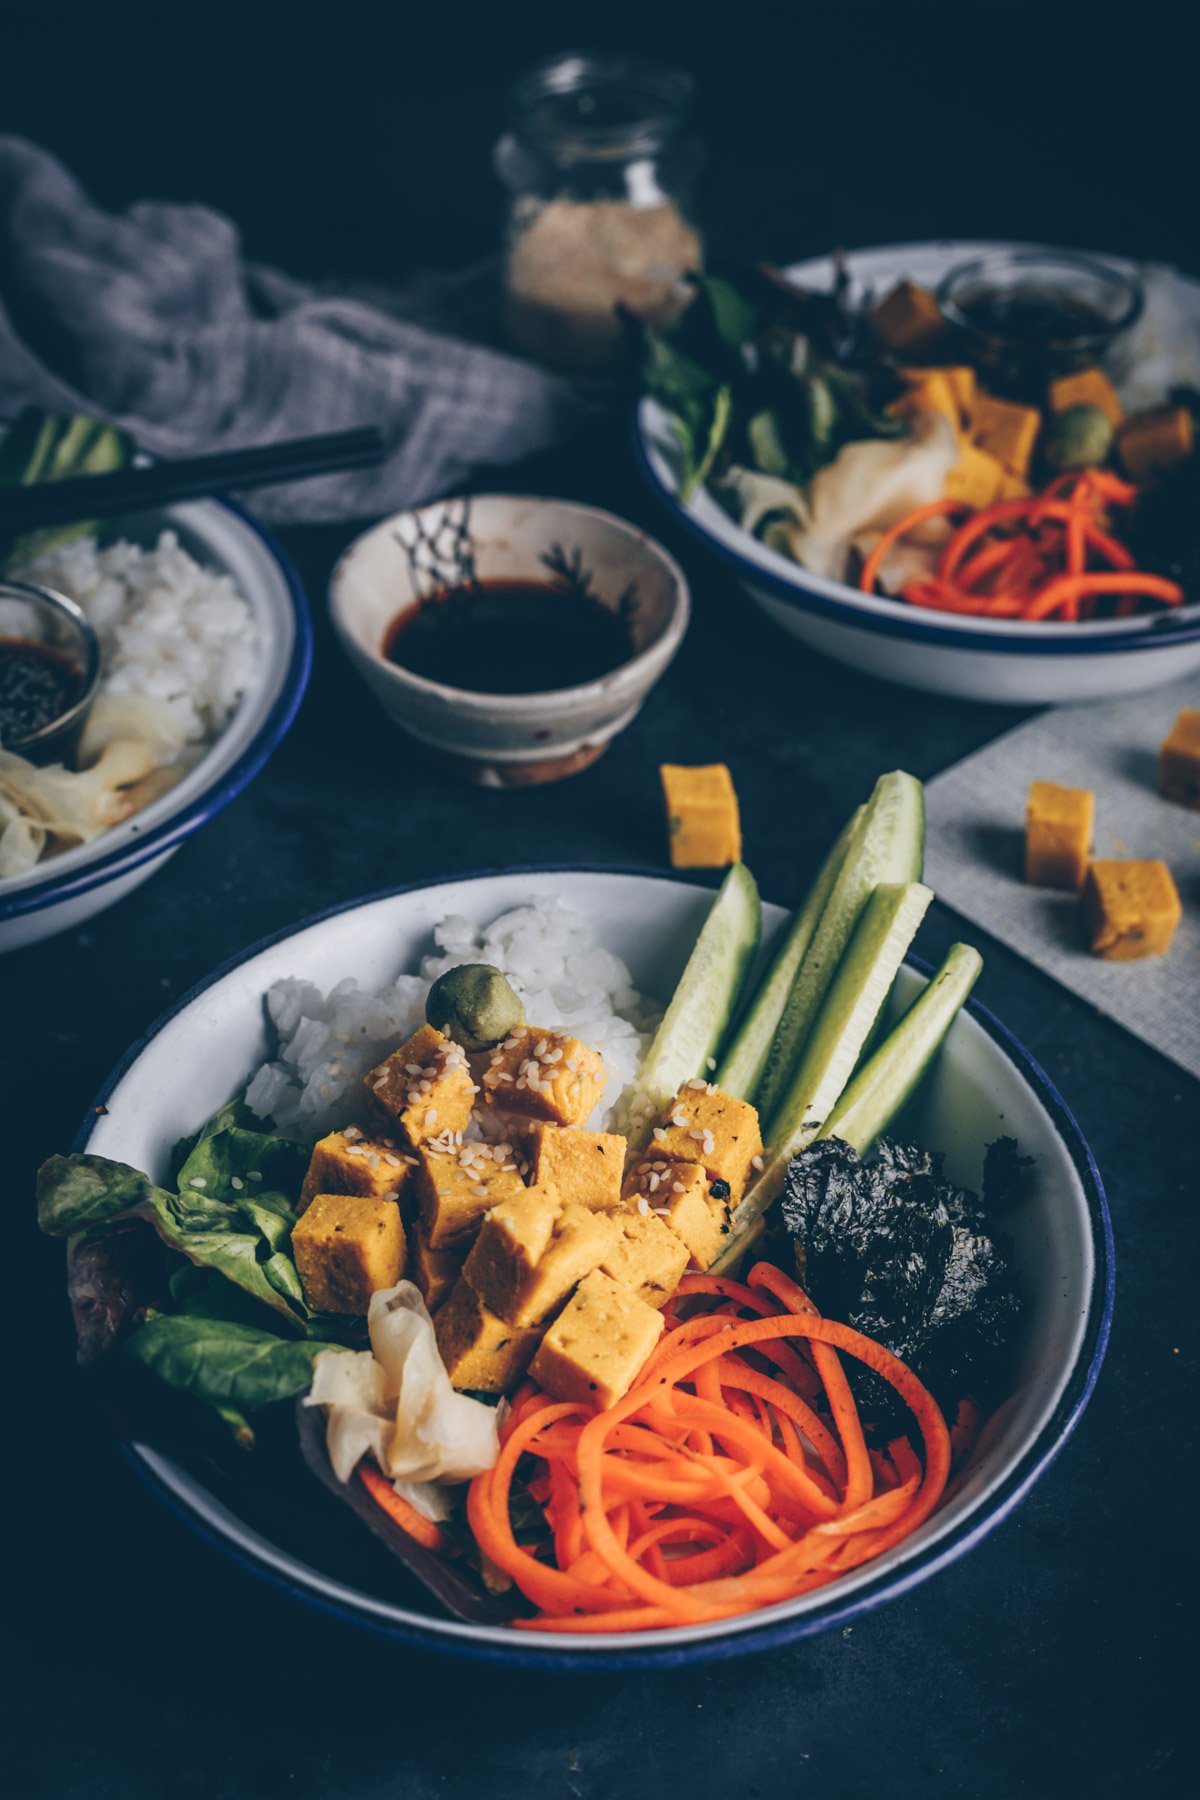 Japanese Sushi Bowl with Chickpea Tofu by Kati of black.white.vivid.